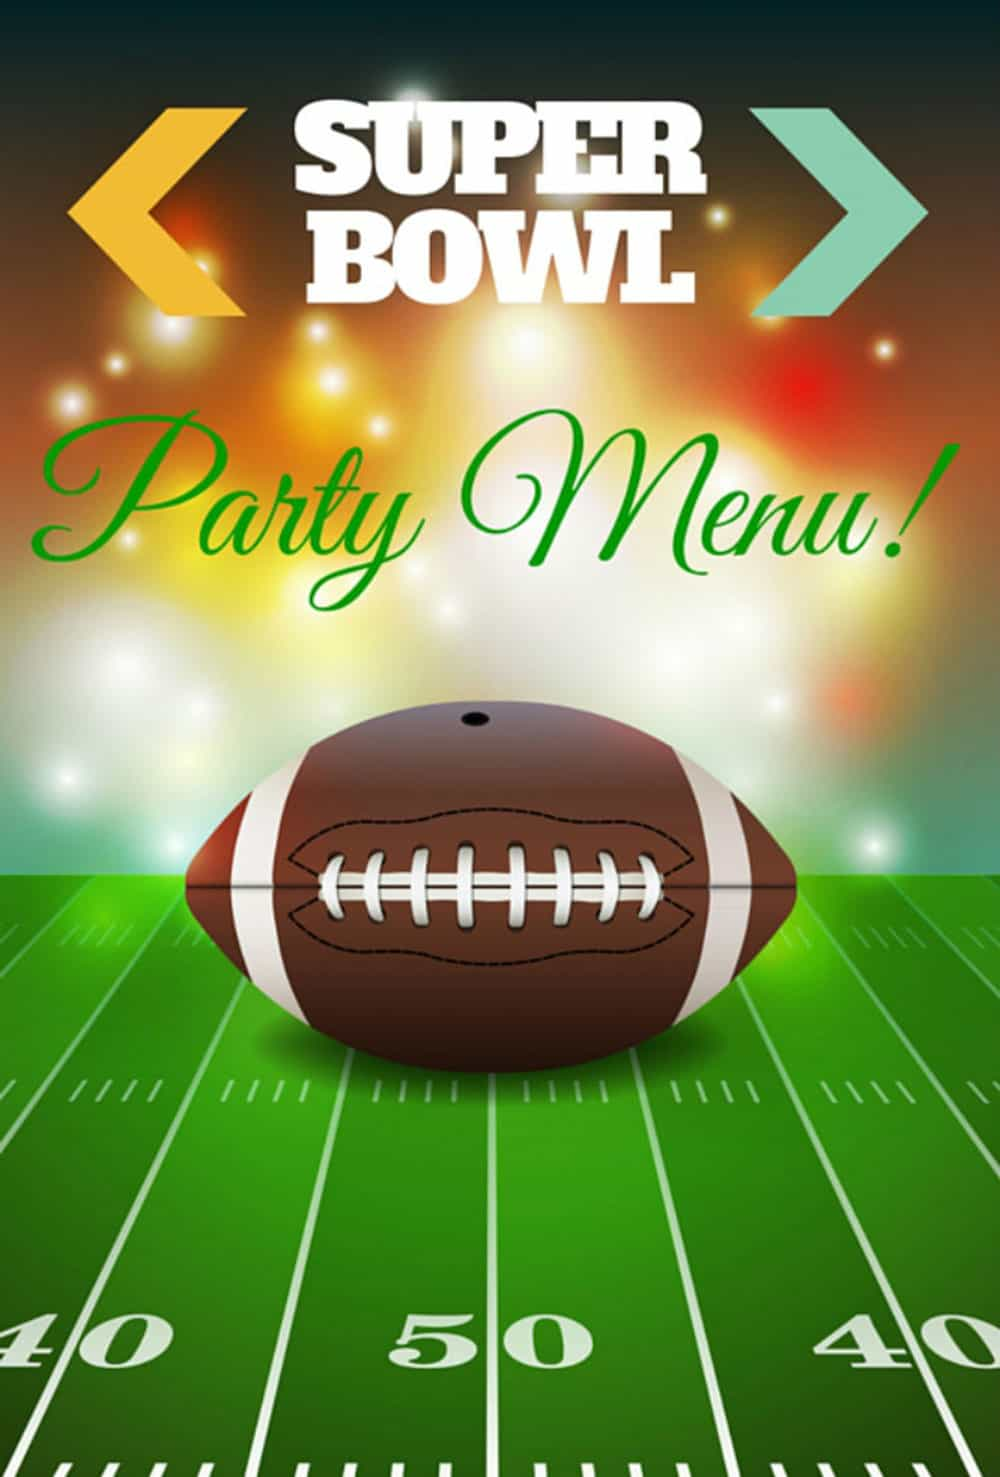 Super Bowl Party Menu | This Roundup is Crammed with Easy to Make Recipes